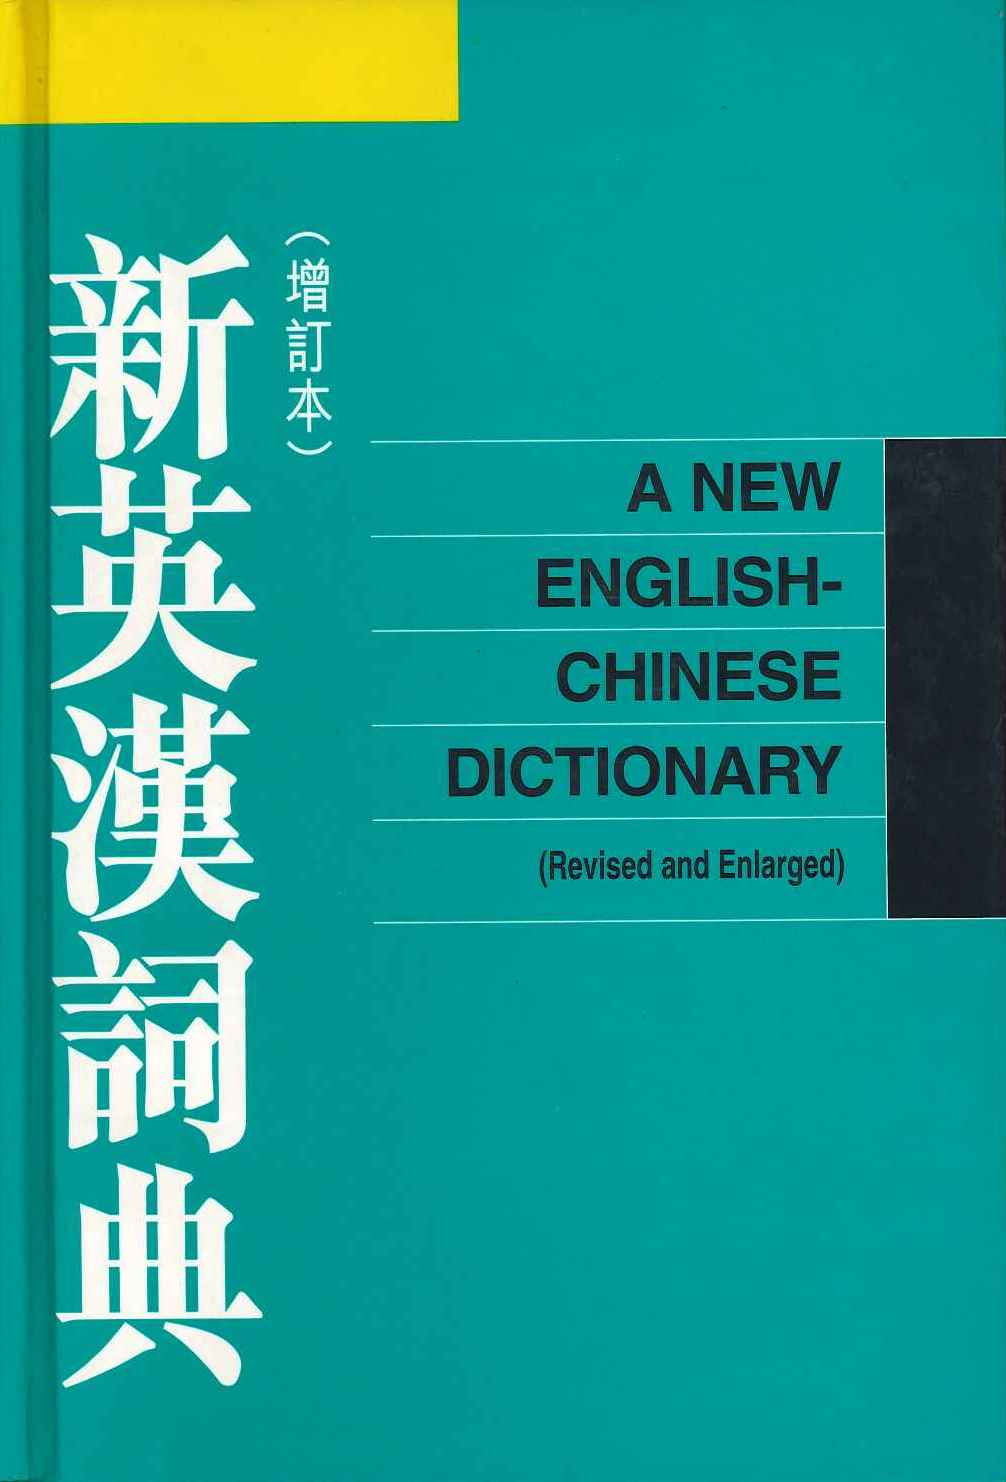 新英漢詞典 (增訂本) A New English-Chinese Dictionary (Revised & Enlarged)